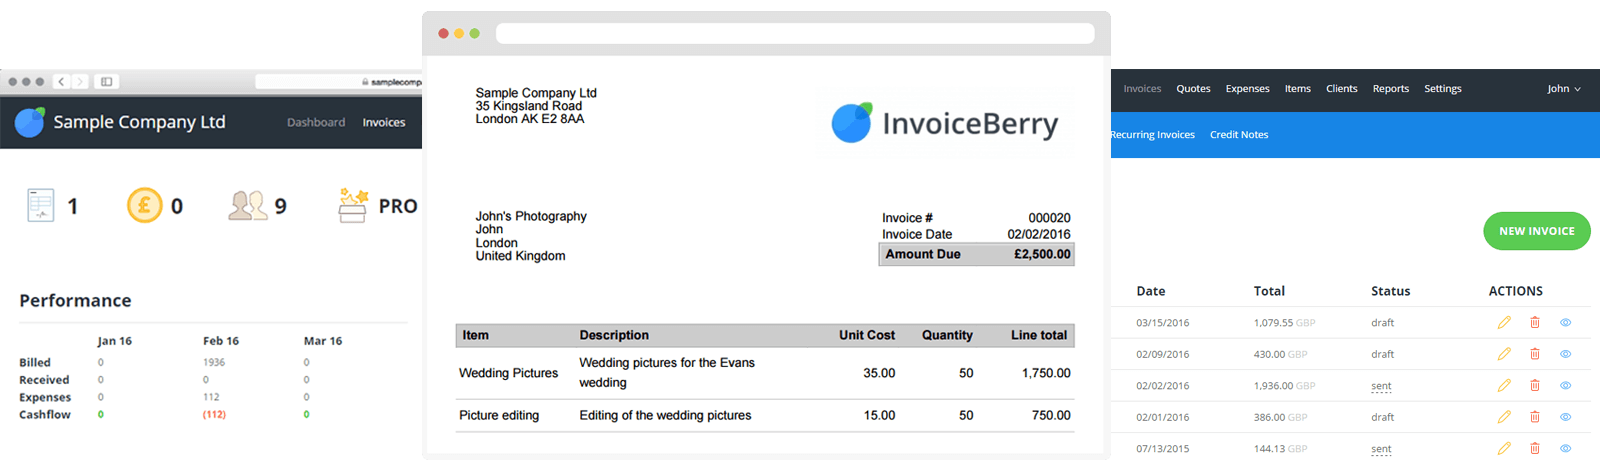 InvoiceBerry Dashboard  Make Invoice Online